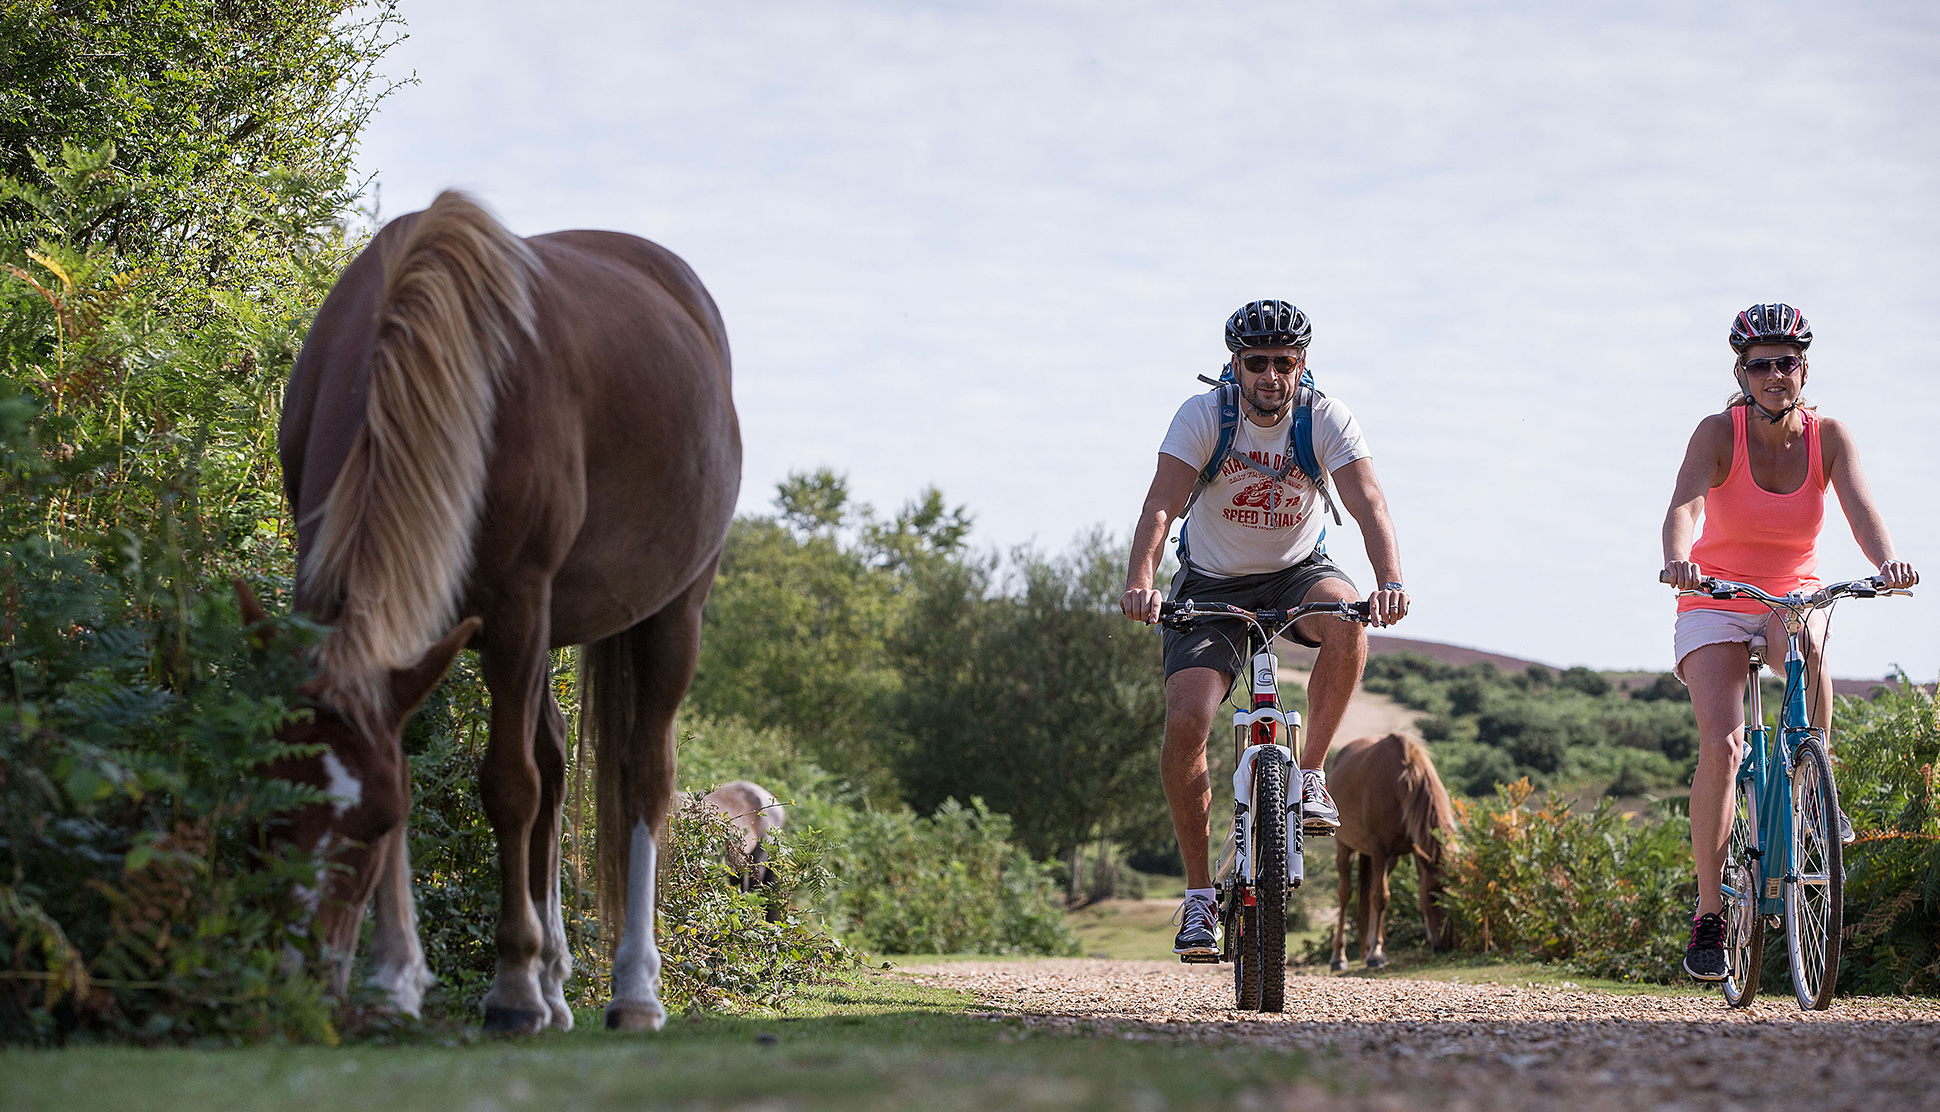 The Best Bike Rides in the New Forest Recommend by New Forest Cottages